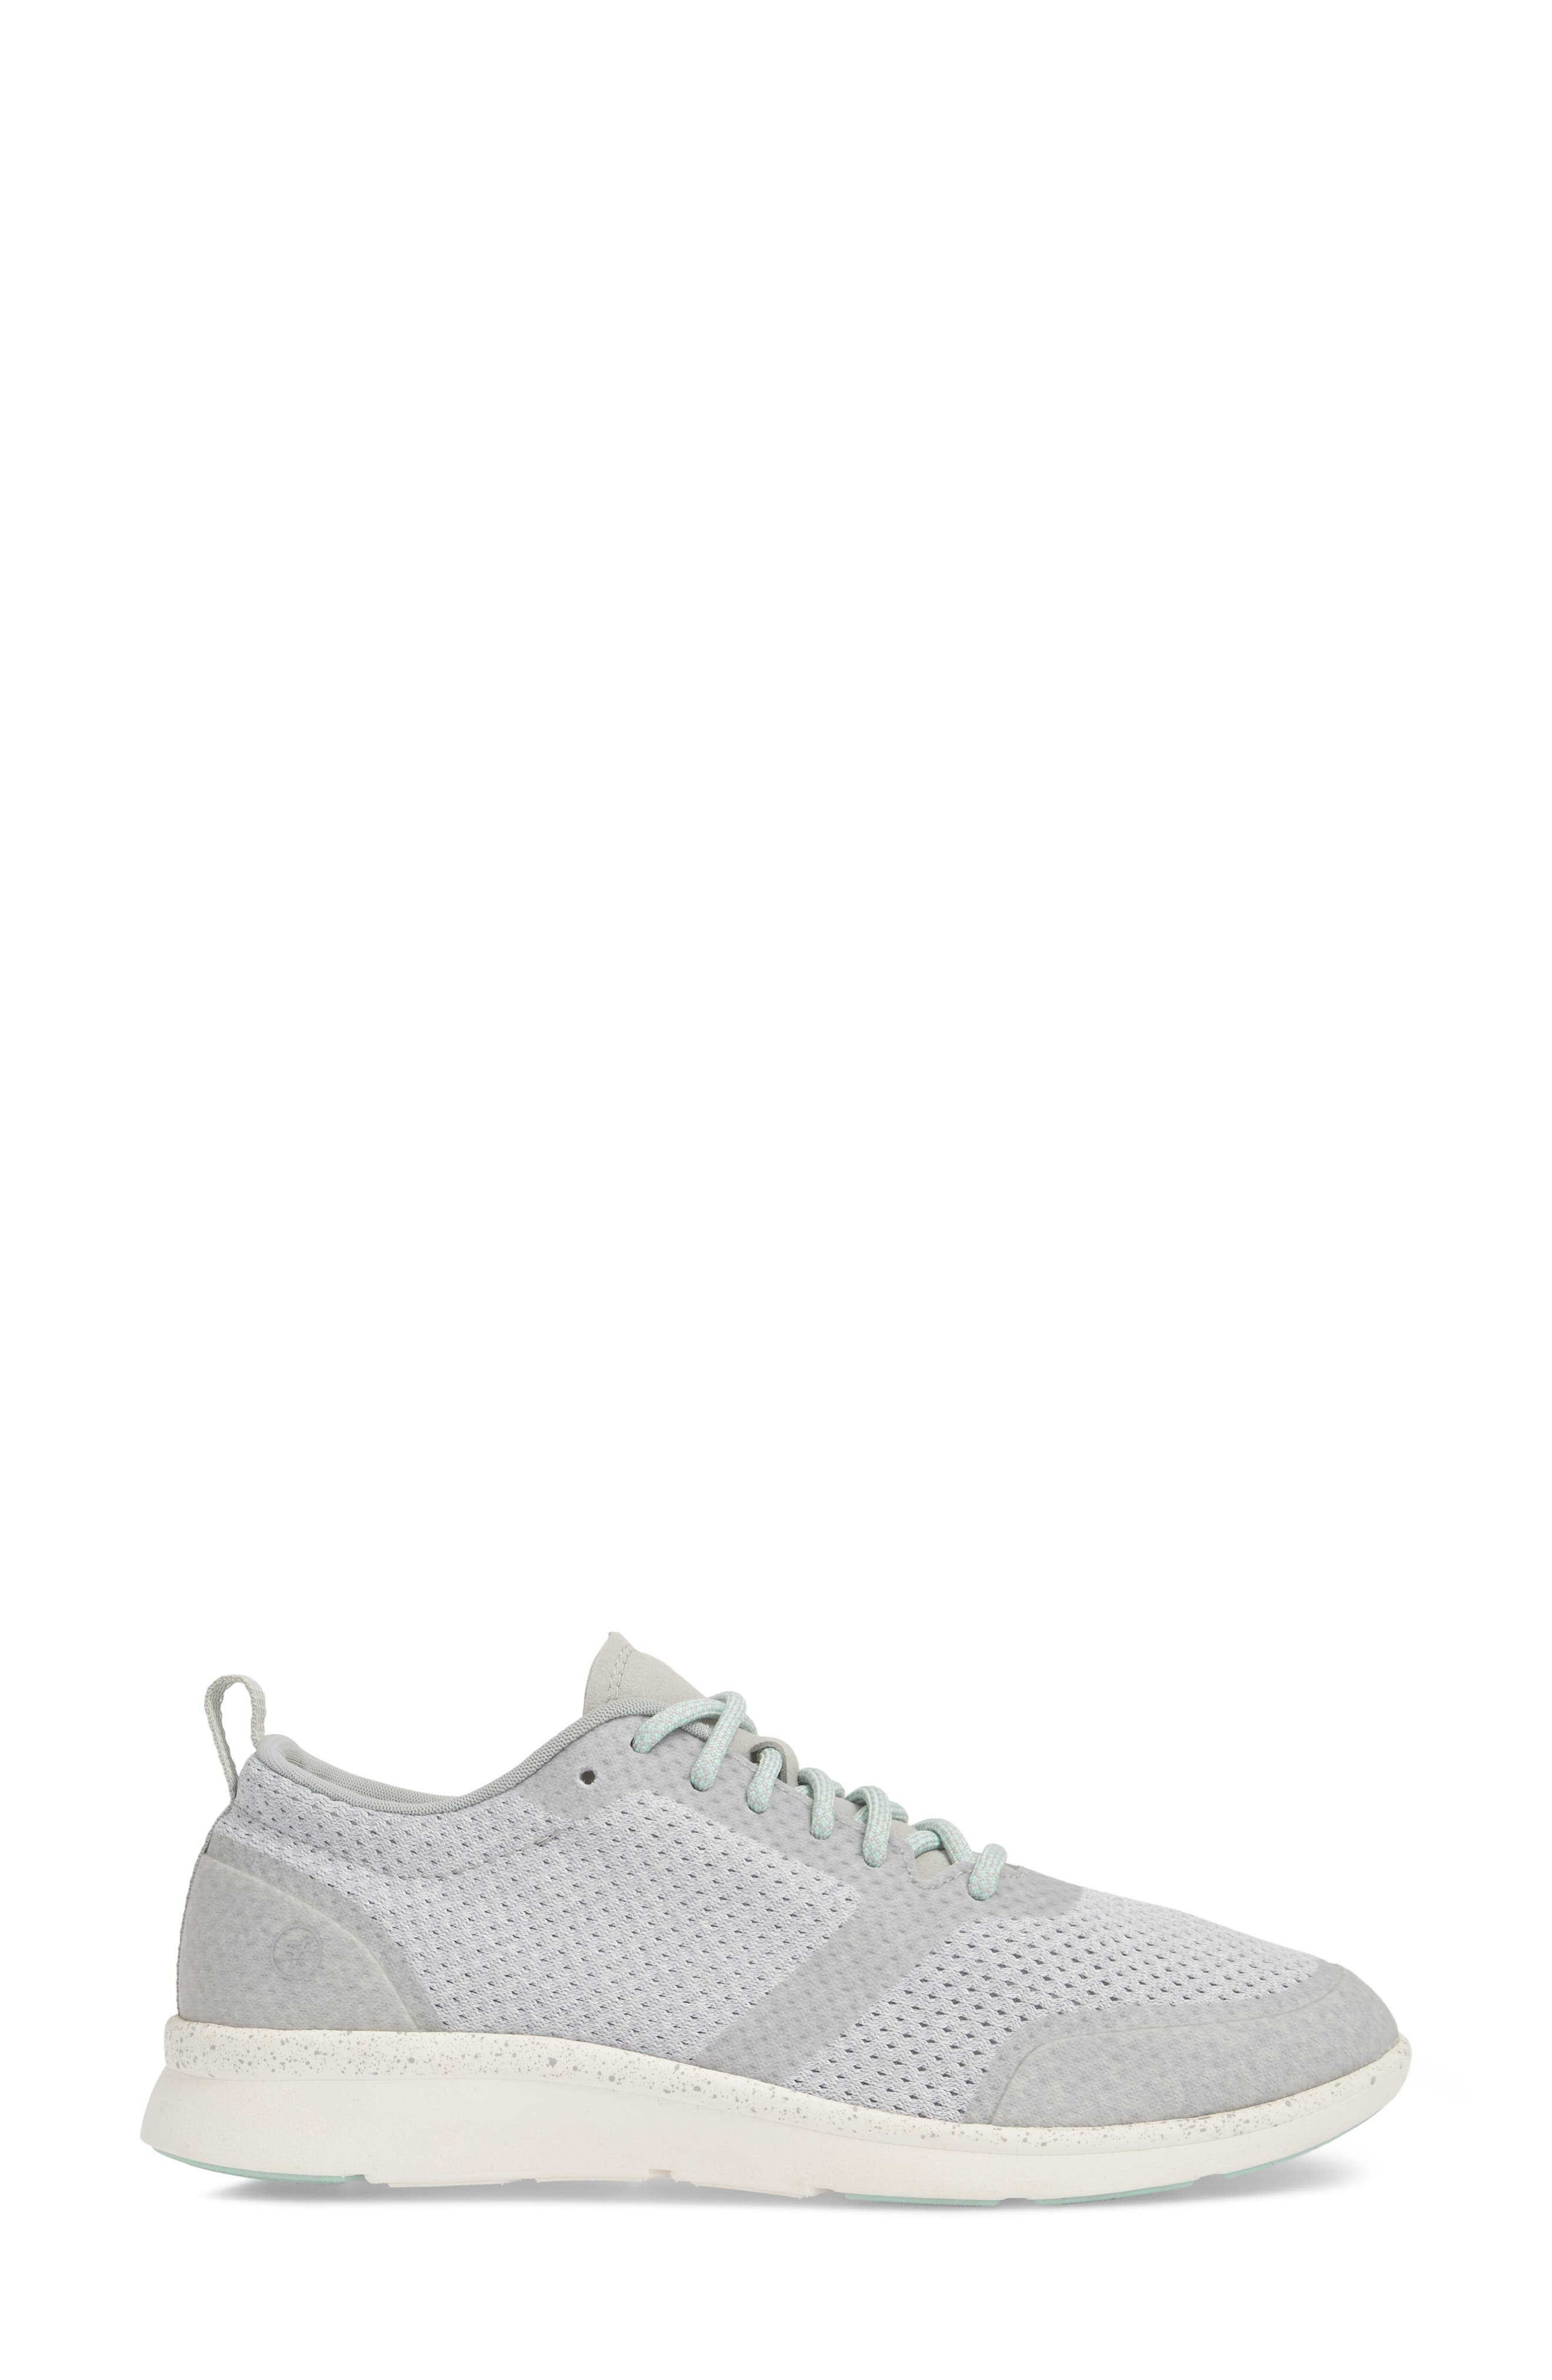 Linden Sneaker,                             Alternate thumbnail 3, color,                             High Rise/ Yucca